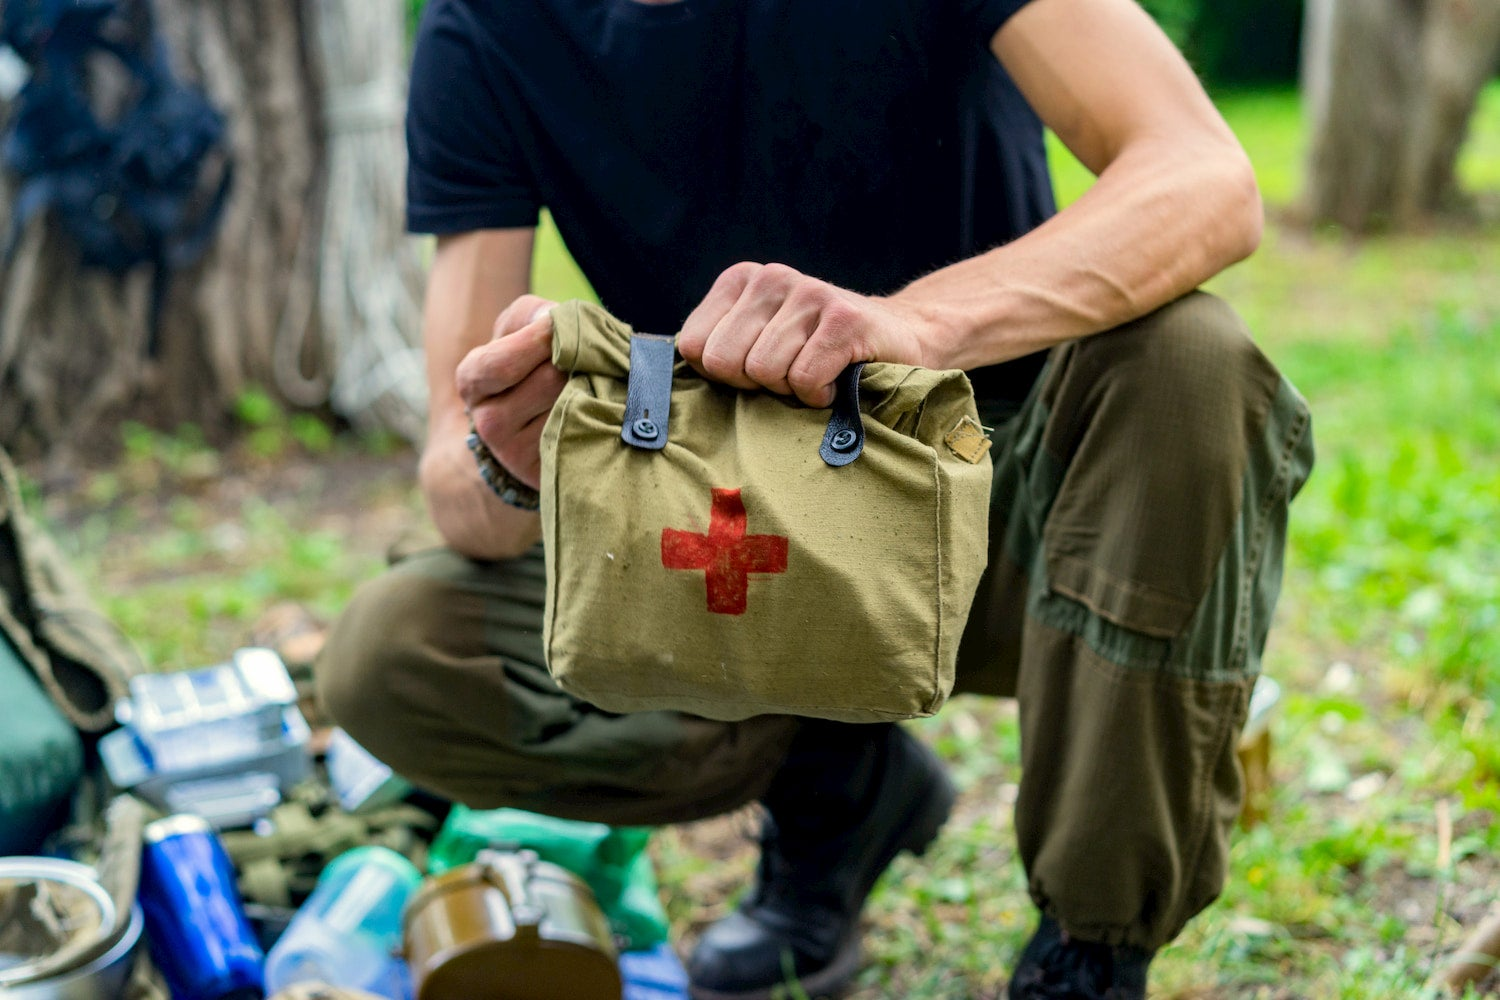 man holding large first aid kit out in the wilderness